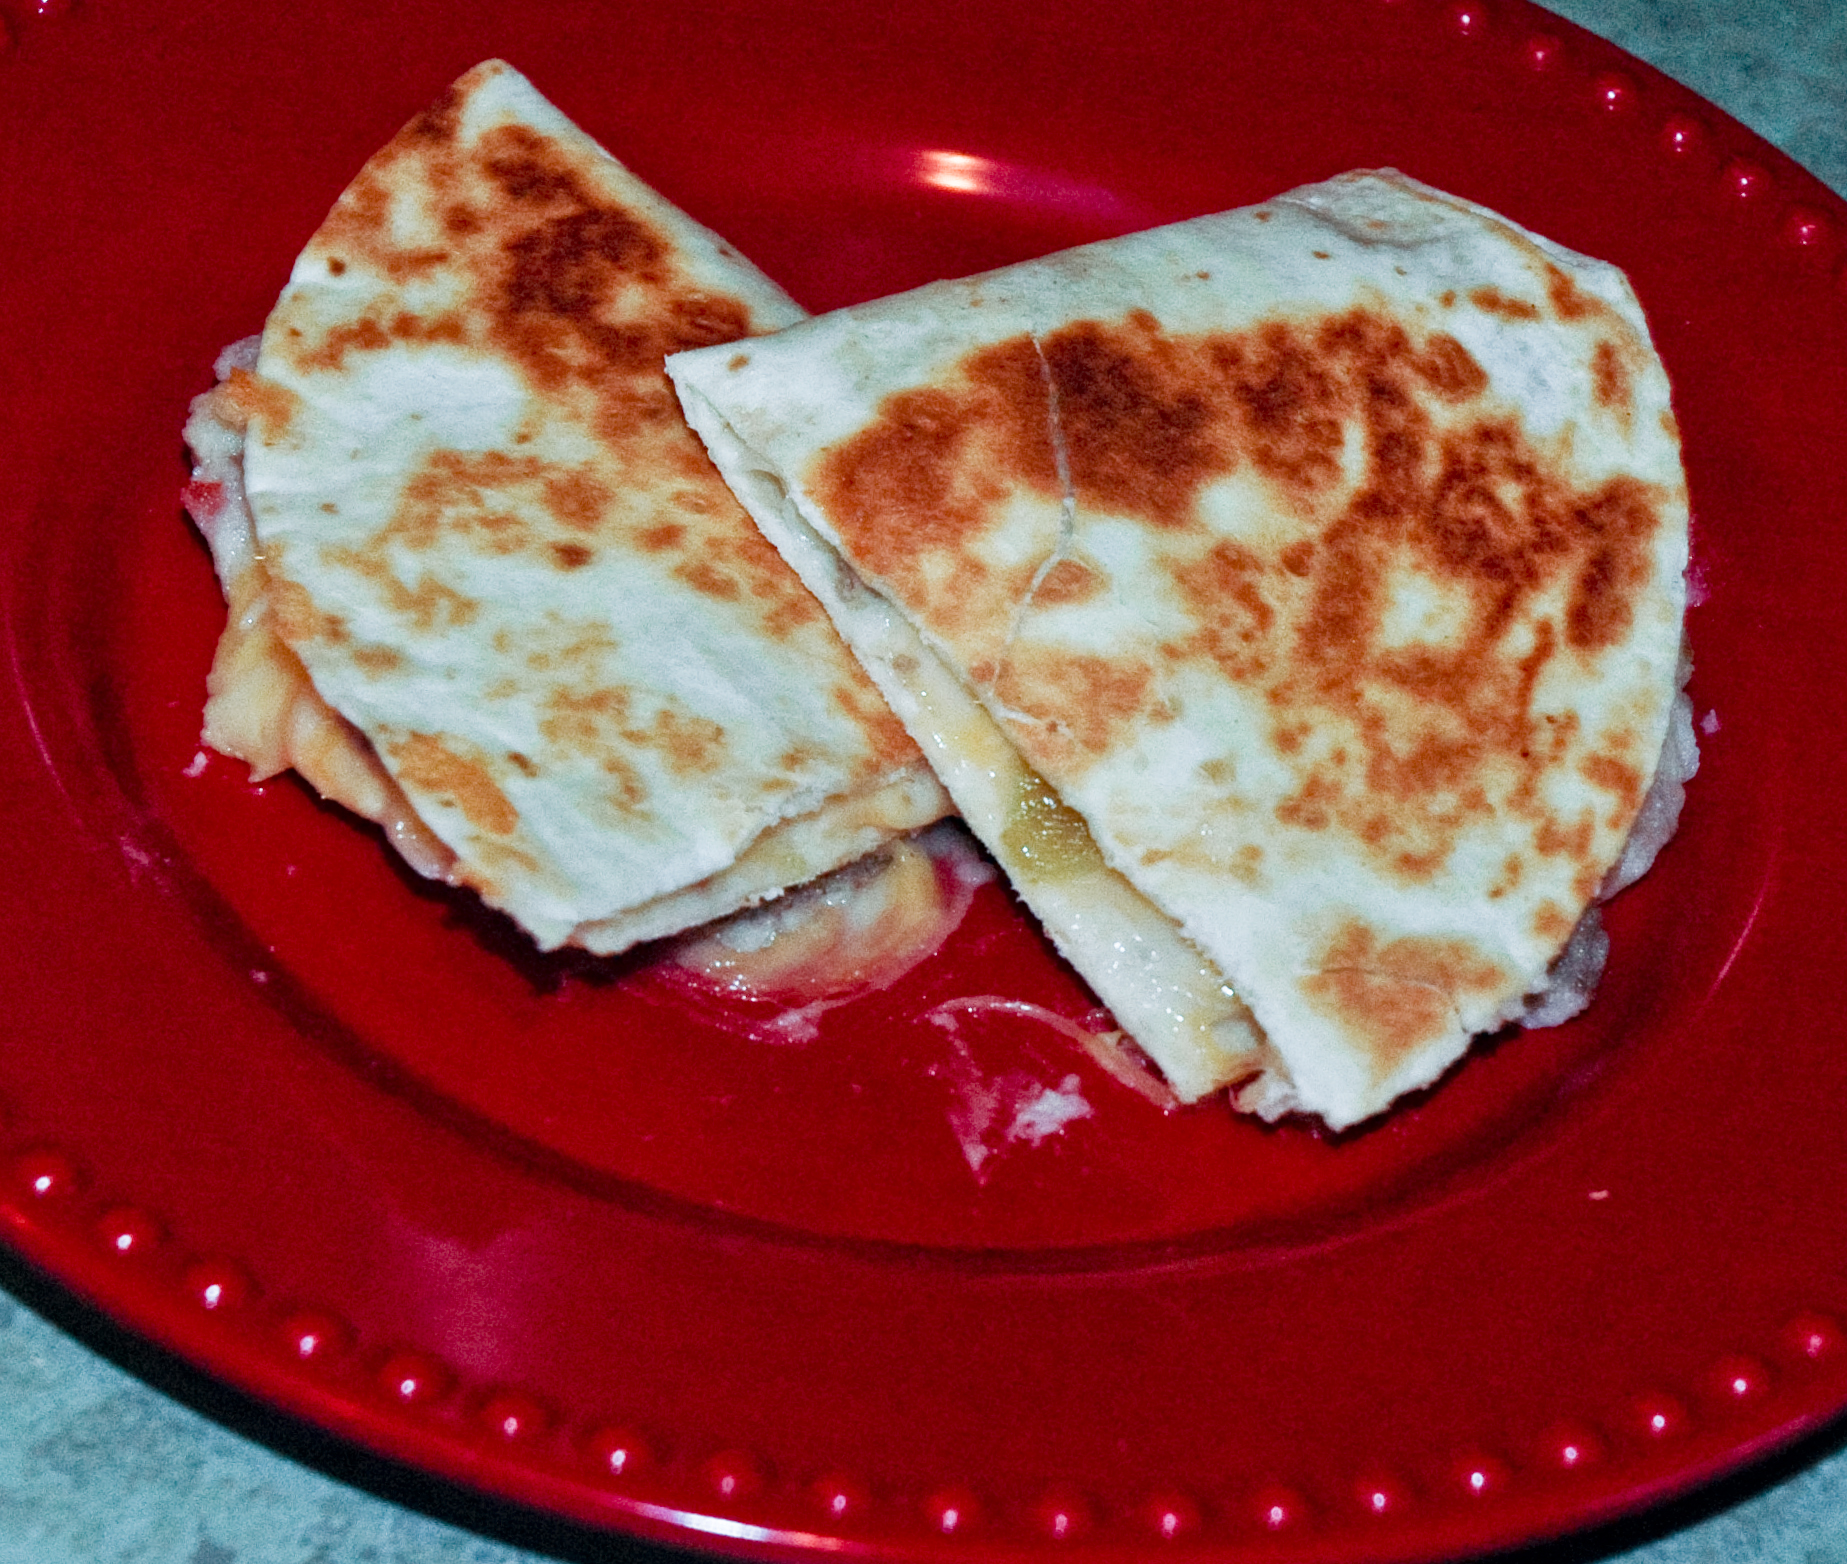 Idahoan Potato and Sausage Quesadillas